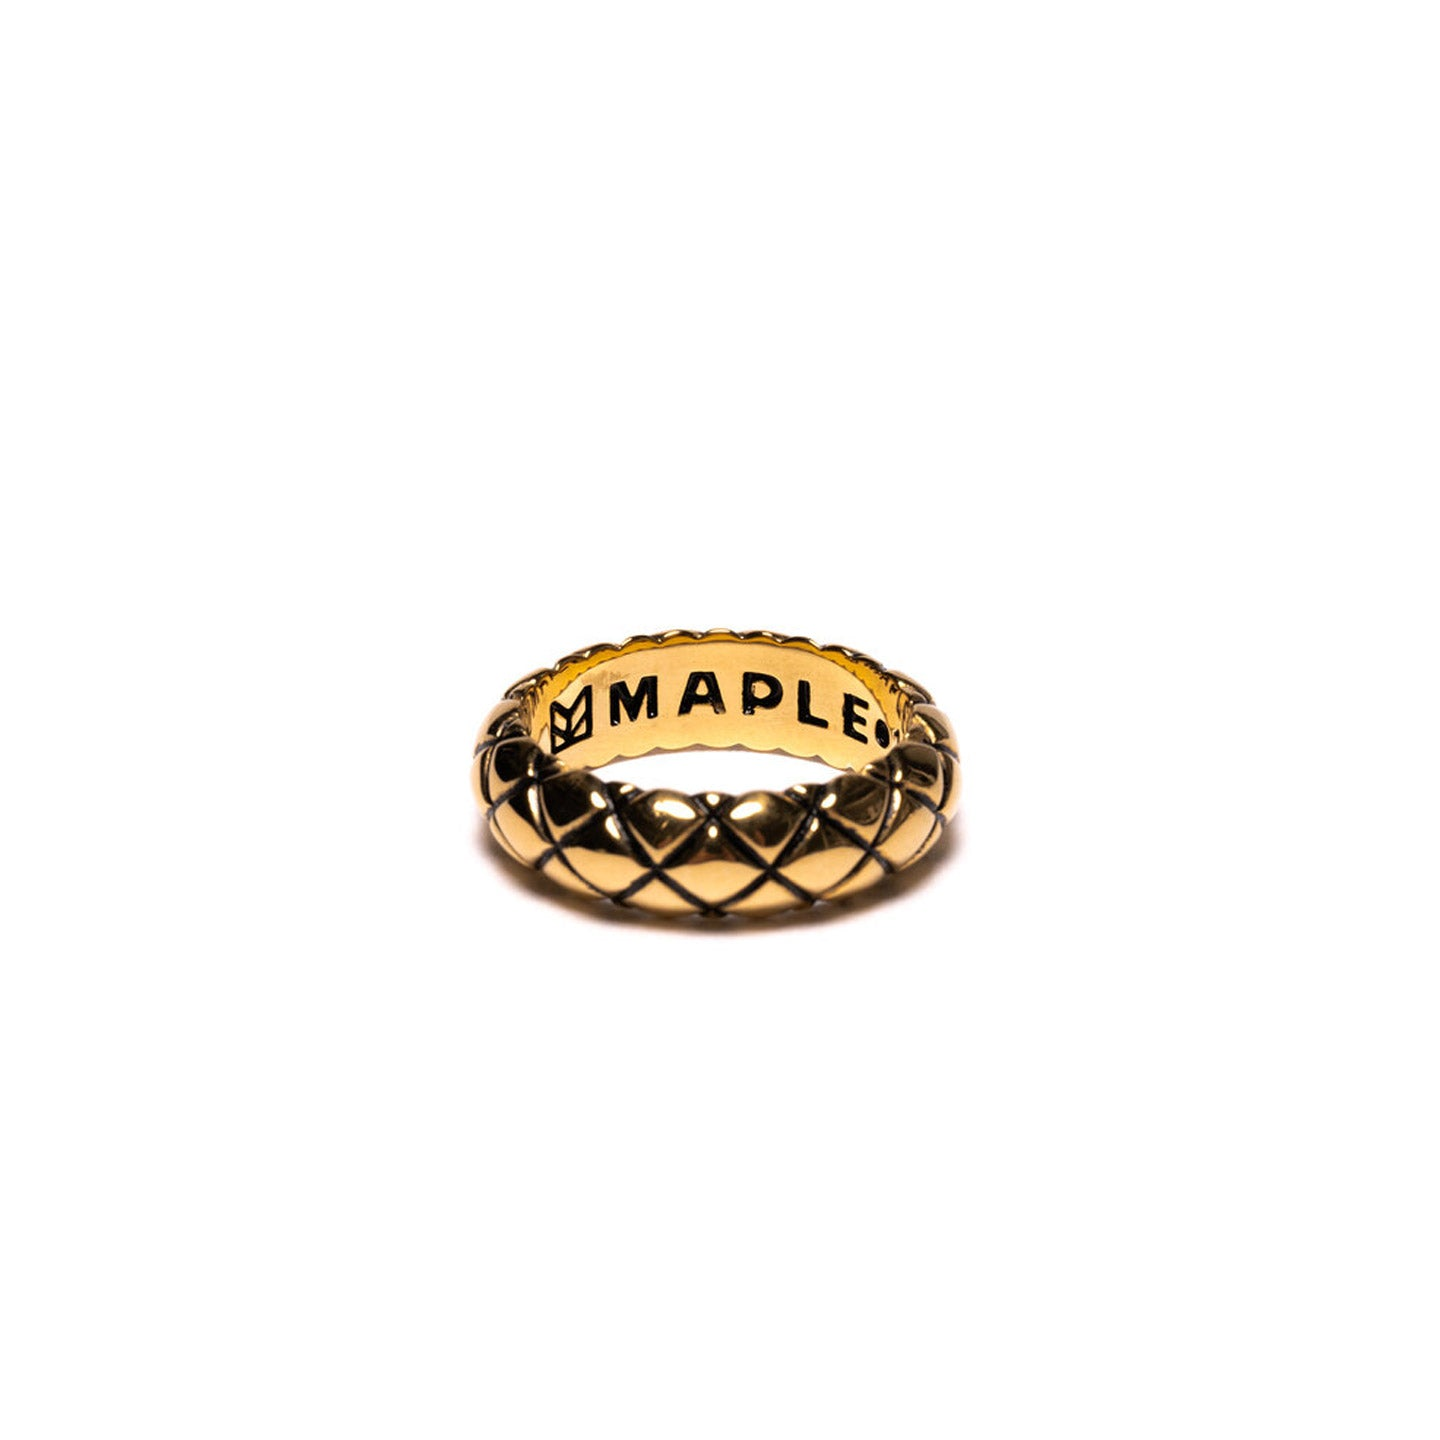 MAPLE QUILTED BAND RING 14K GOLD PLATED